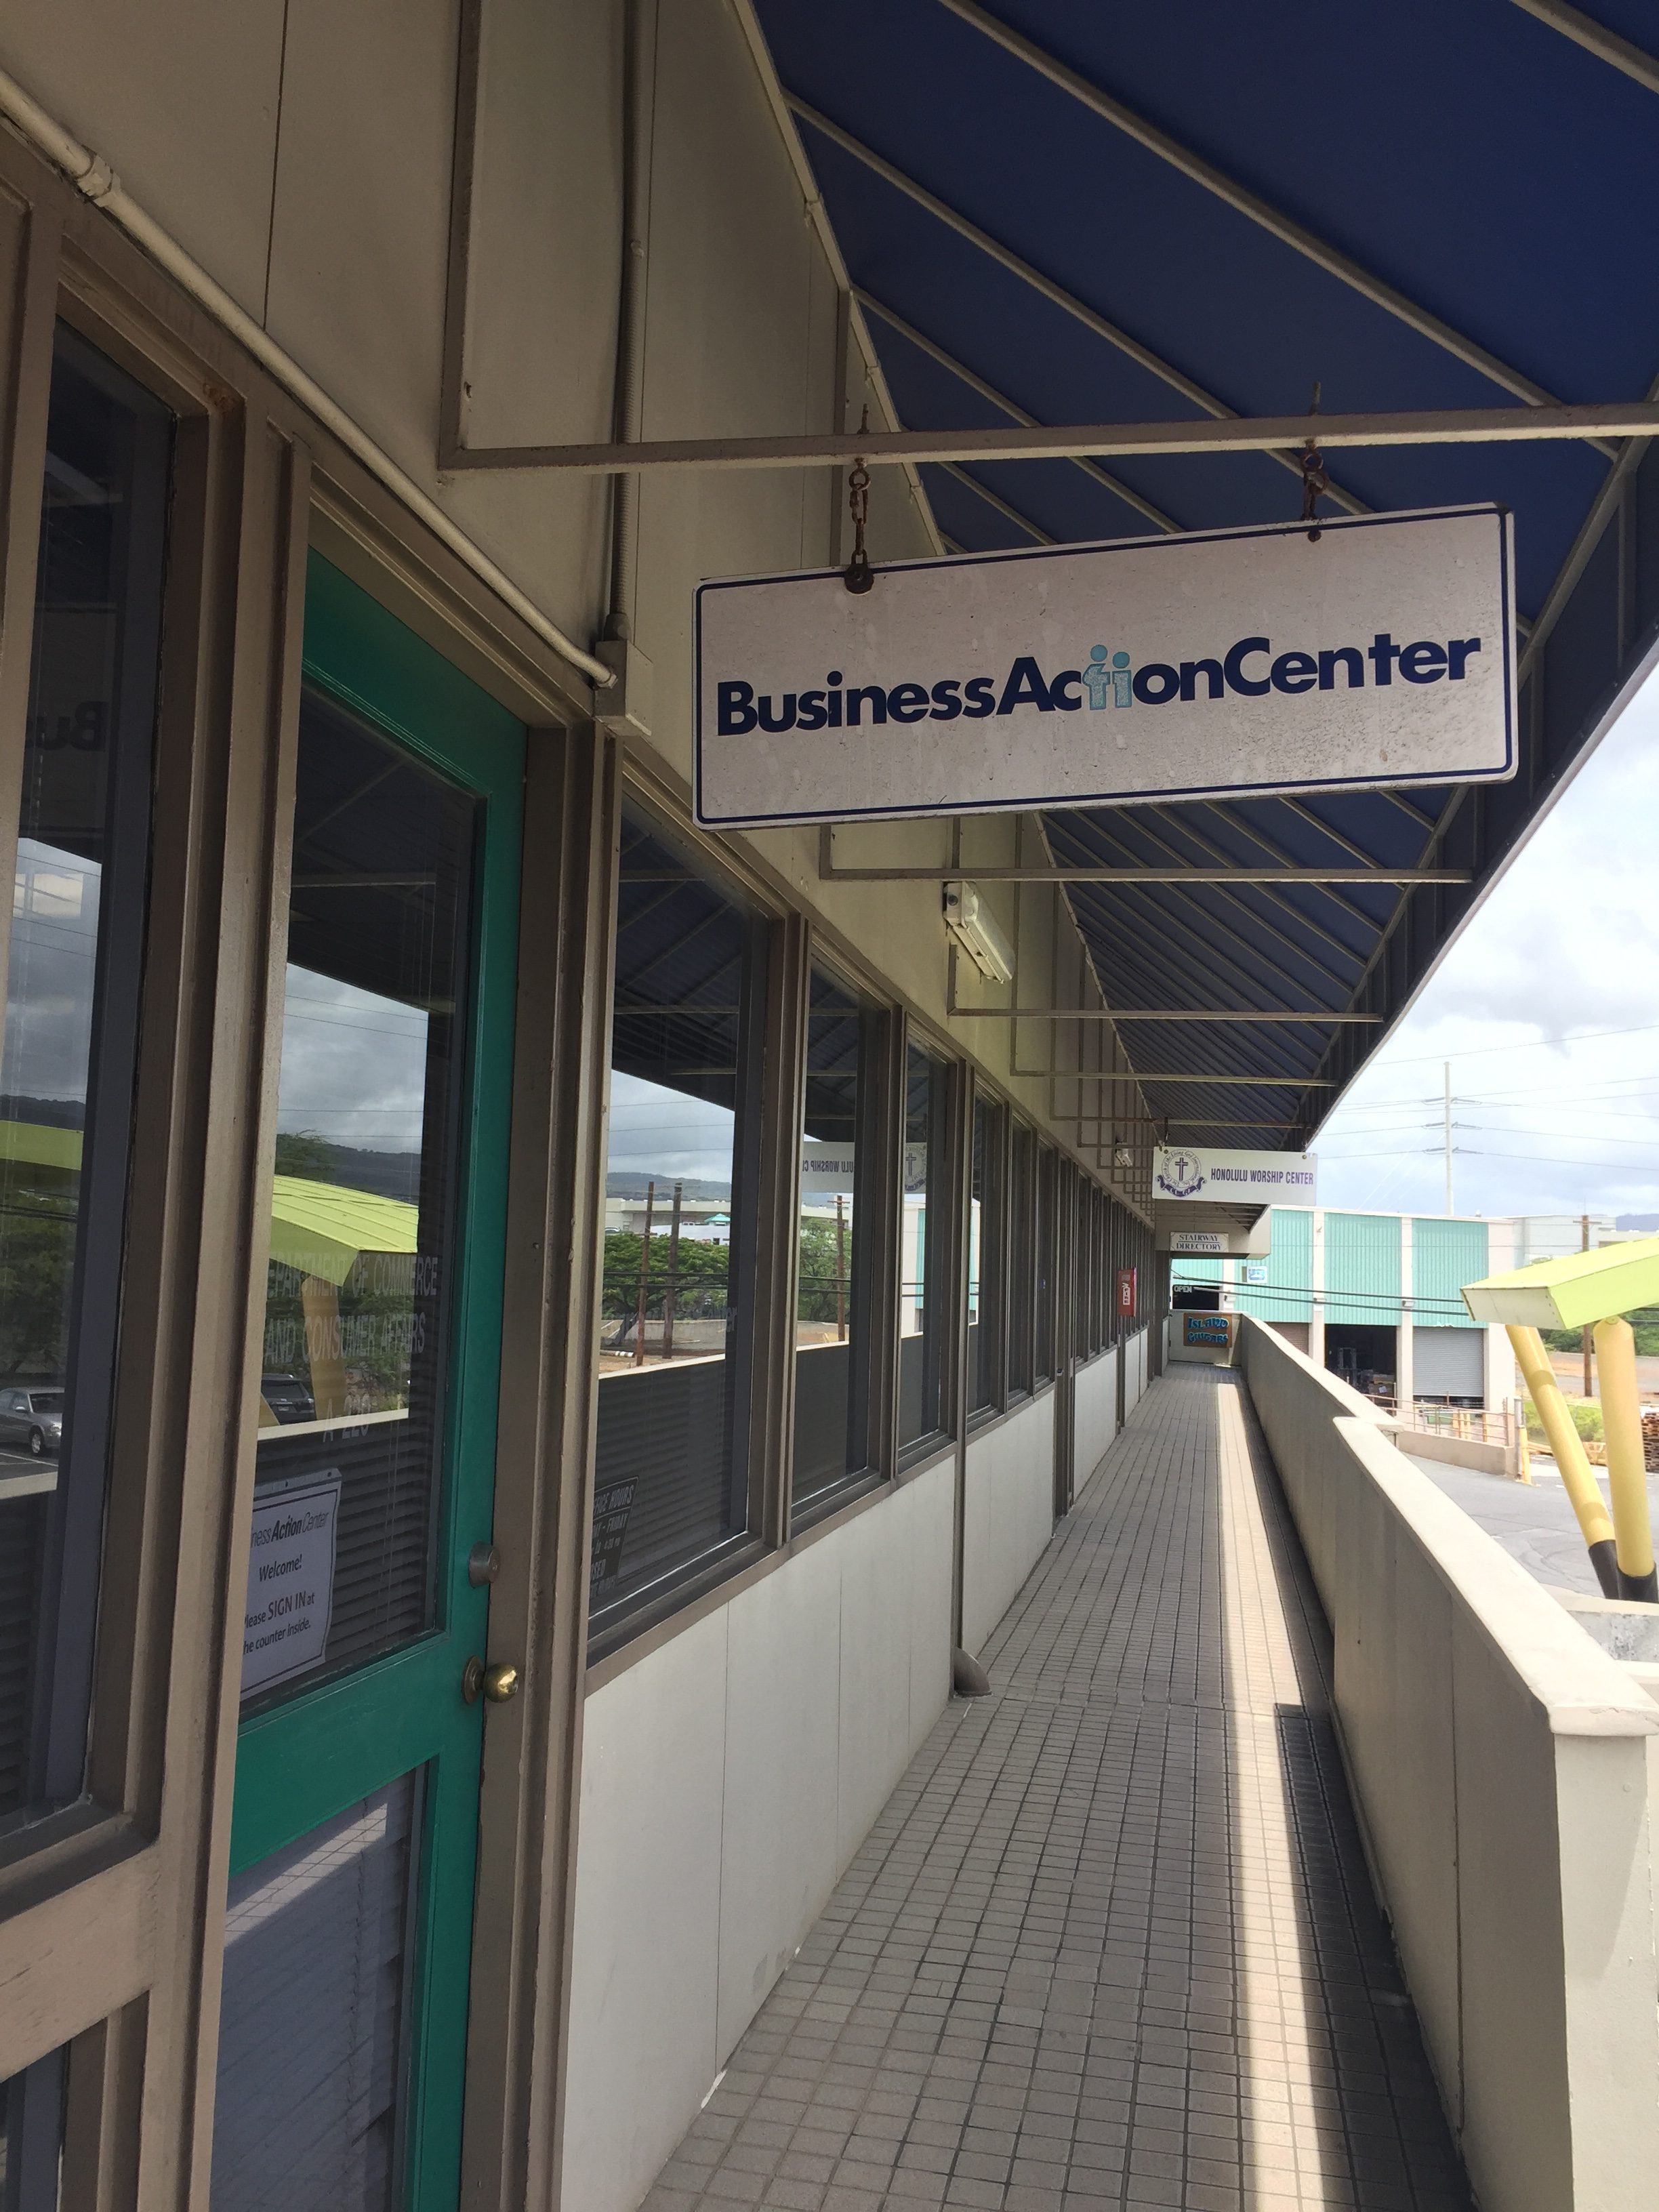 BussinessActionCenter